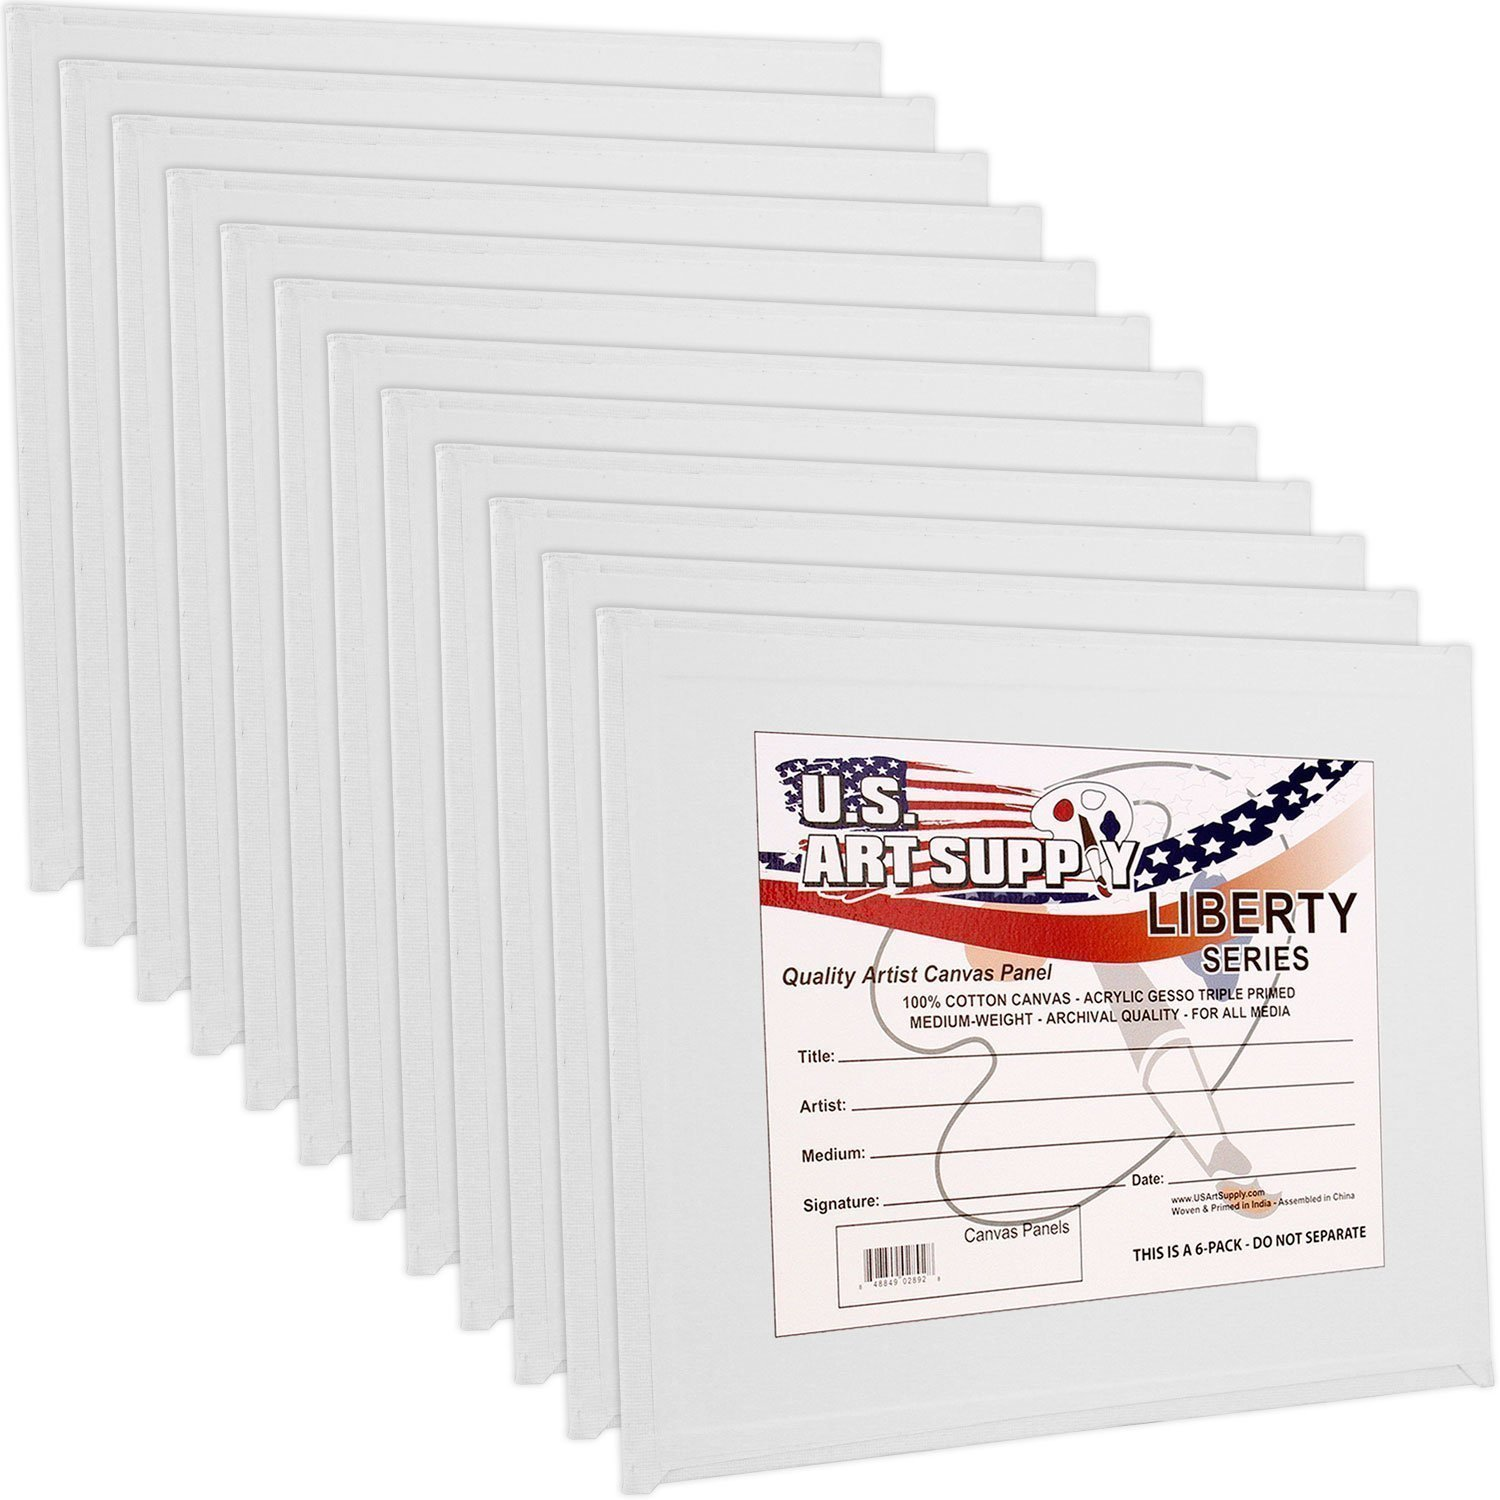 US Art Supply 8 X 10 inch Professional Artist Quality Acid Free Canvas Panels 12-Pack (1 Full Case of 12 Single Canvas Panels) by US Art Supply